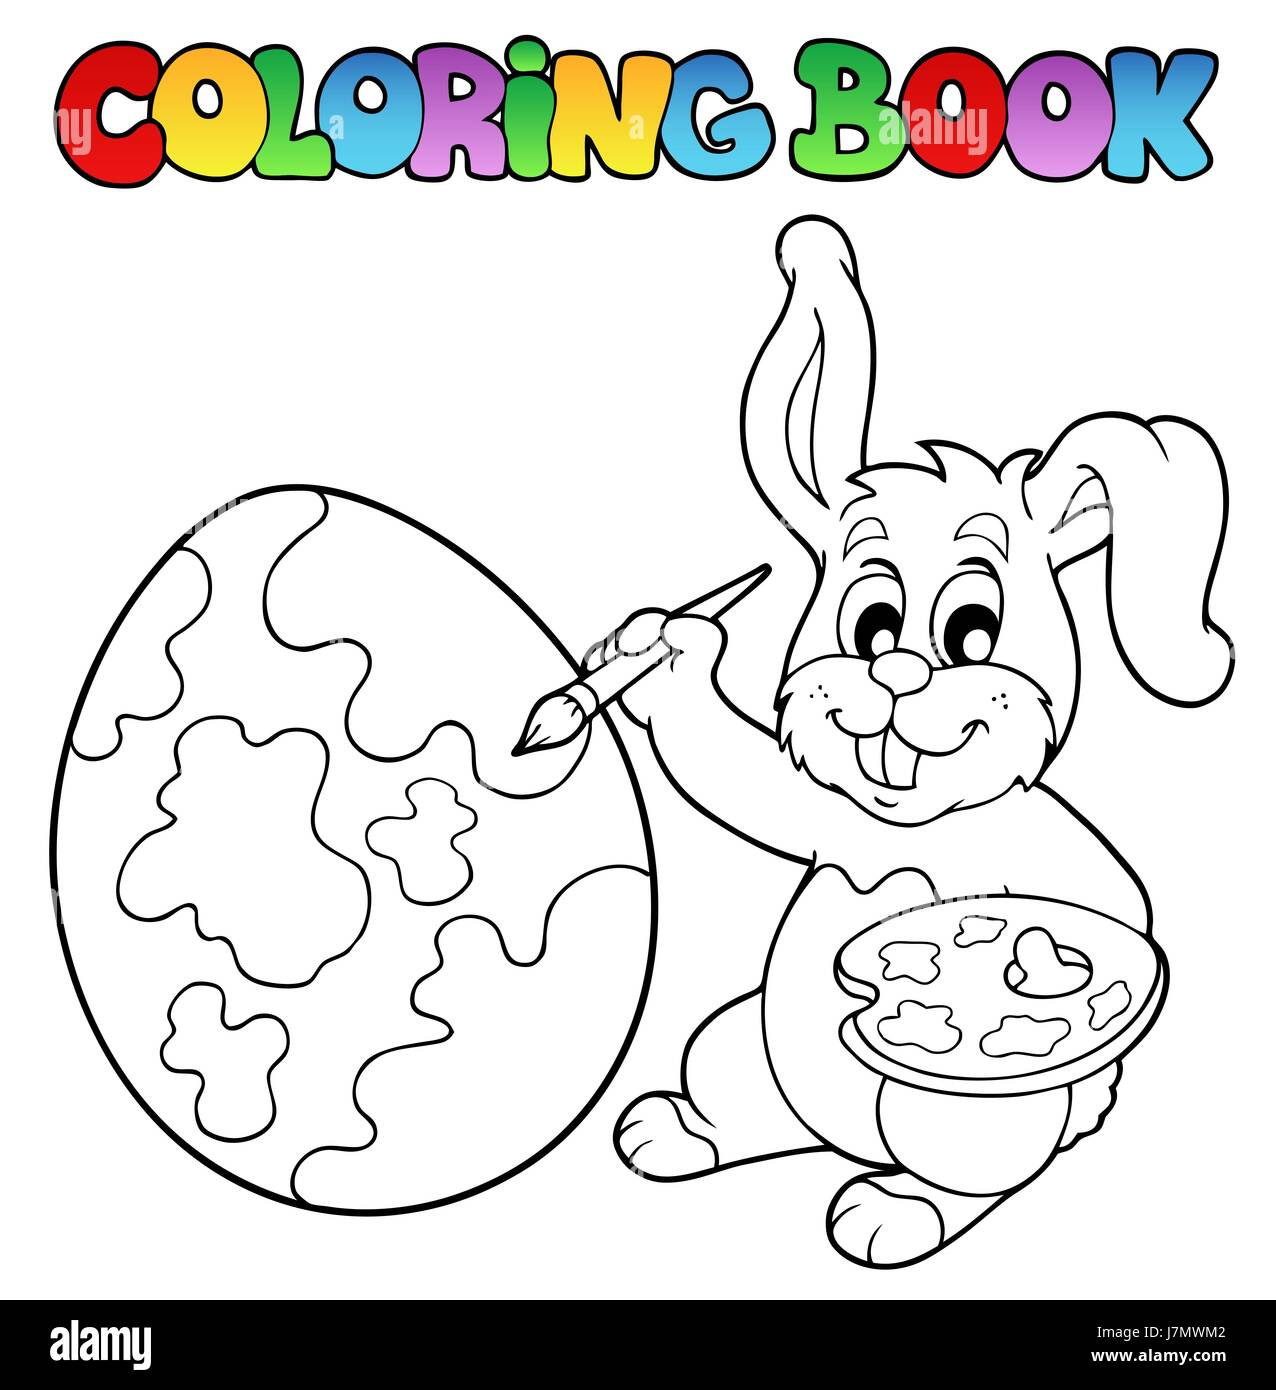 Easter Bunny Colour Palette Stock Photos & Easter Bunny ...